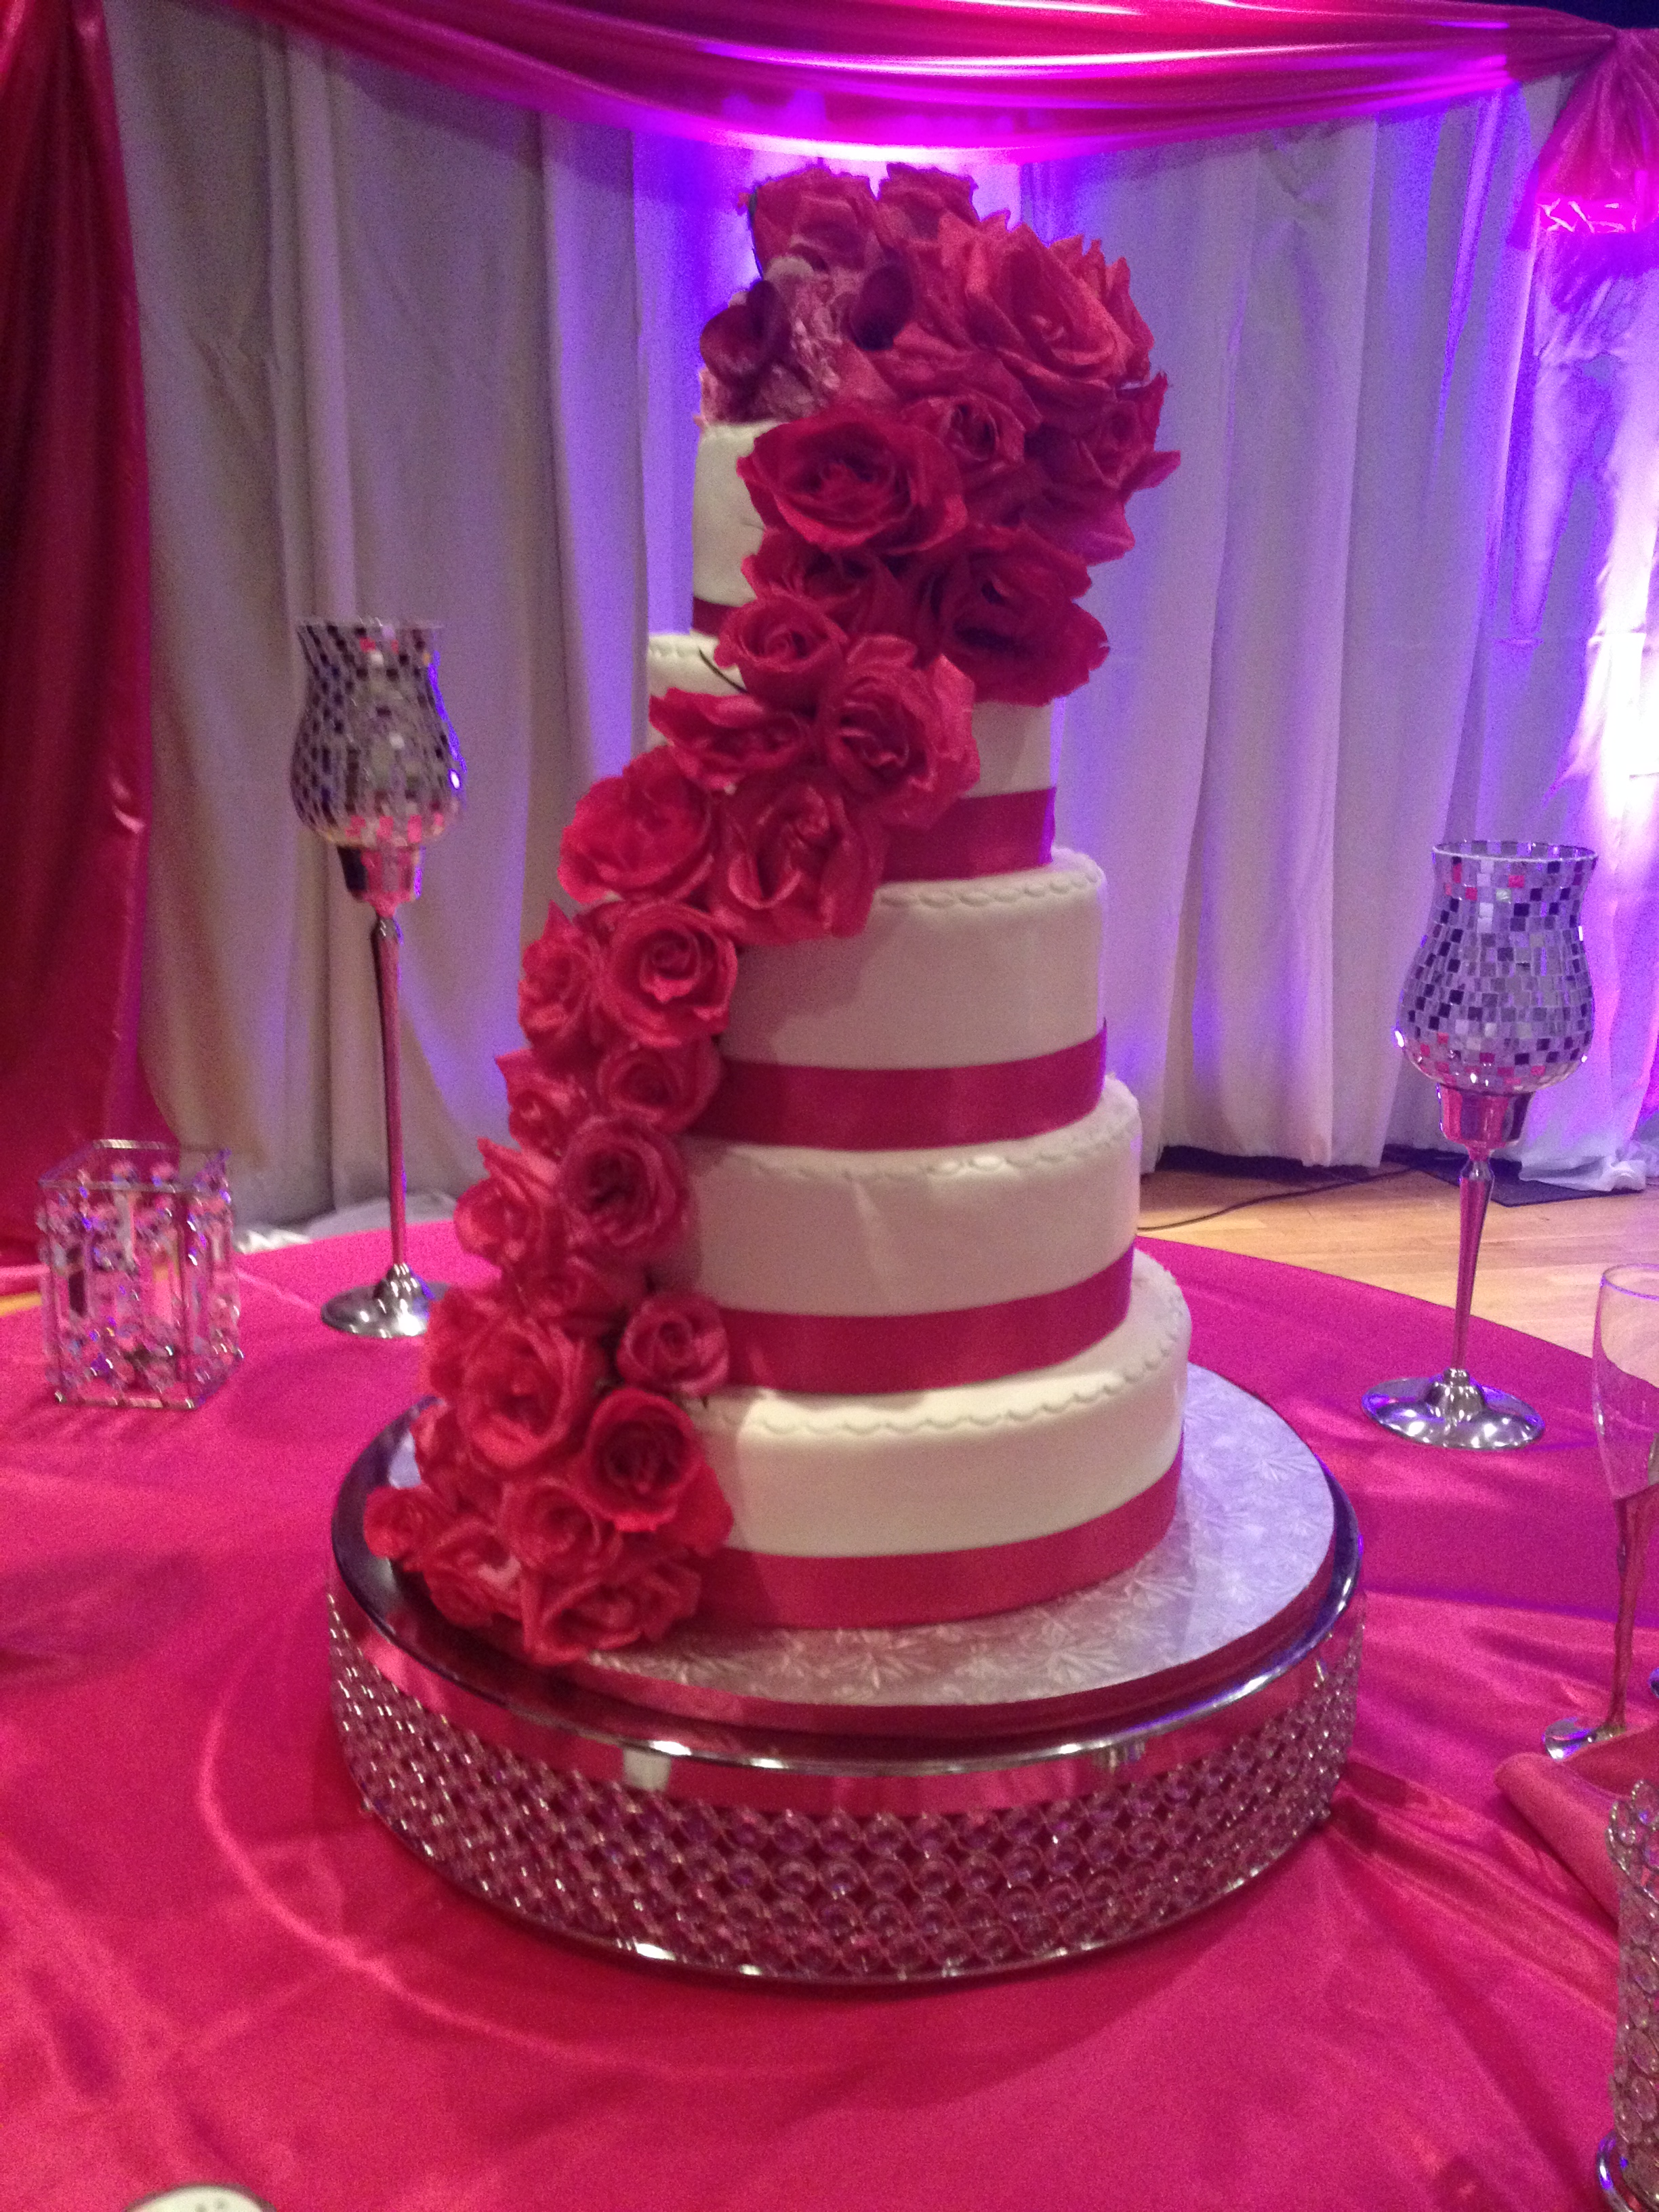 We Take Special Pride In Our Creations And Will Insure Prompt Safe Delivery Pick Up Is Also Available Wedding Black White Fondant Cake